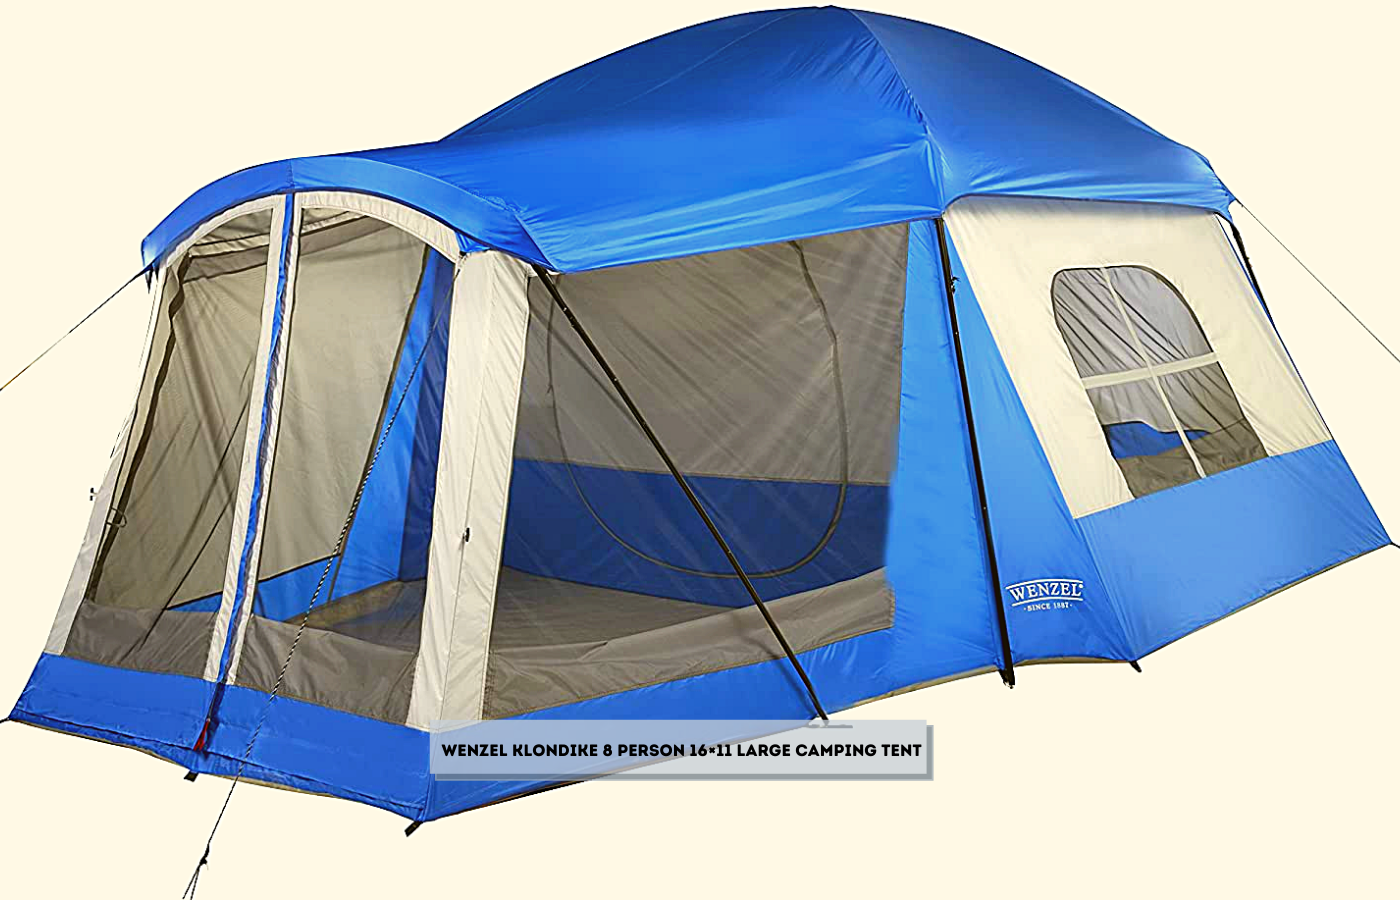 Wenzel Klondike 8 Person 16×11 Large Camping Tent